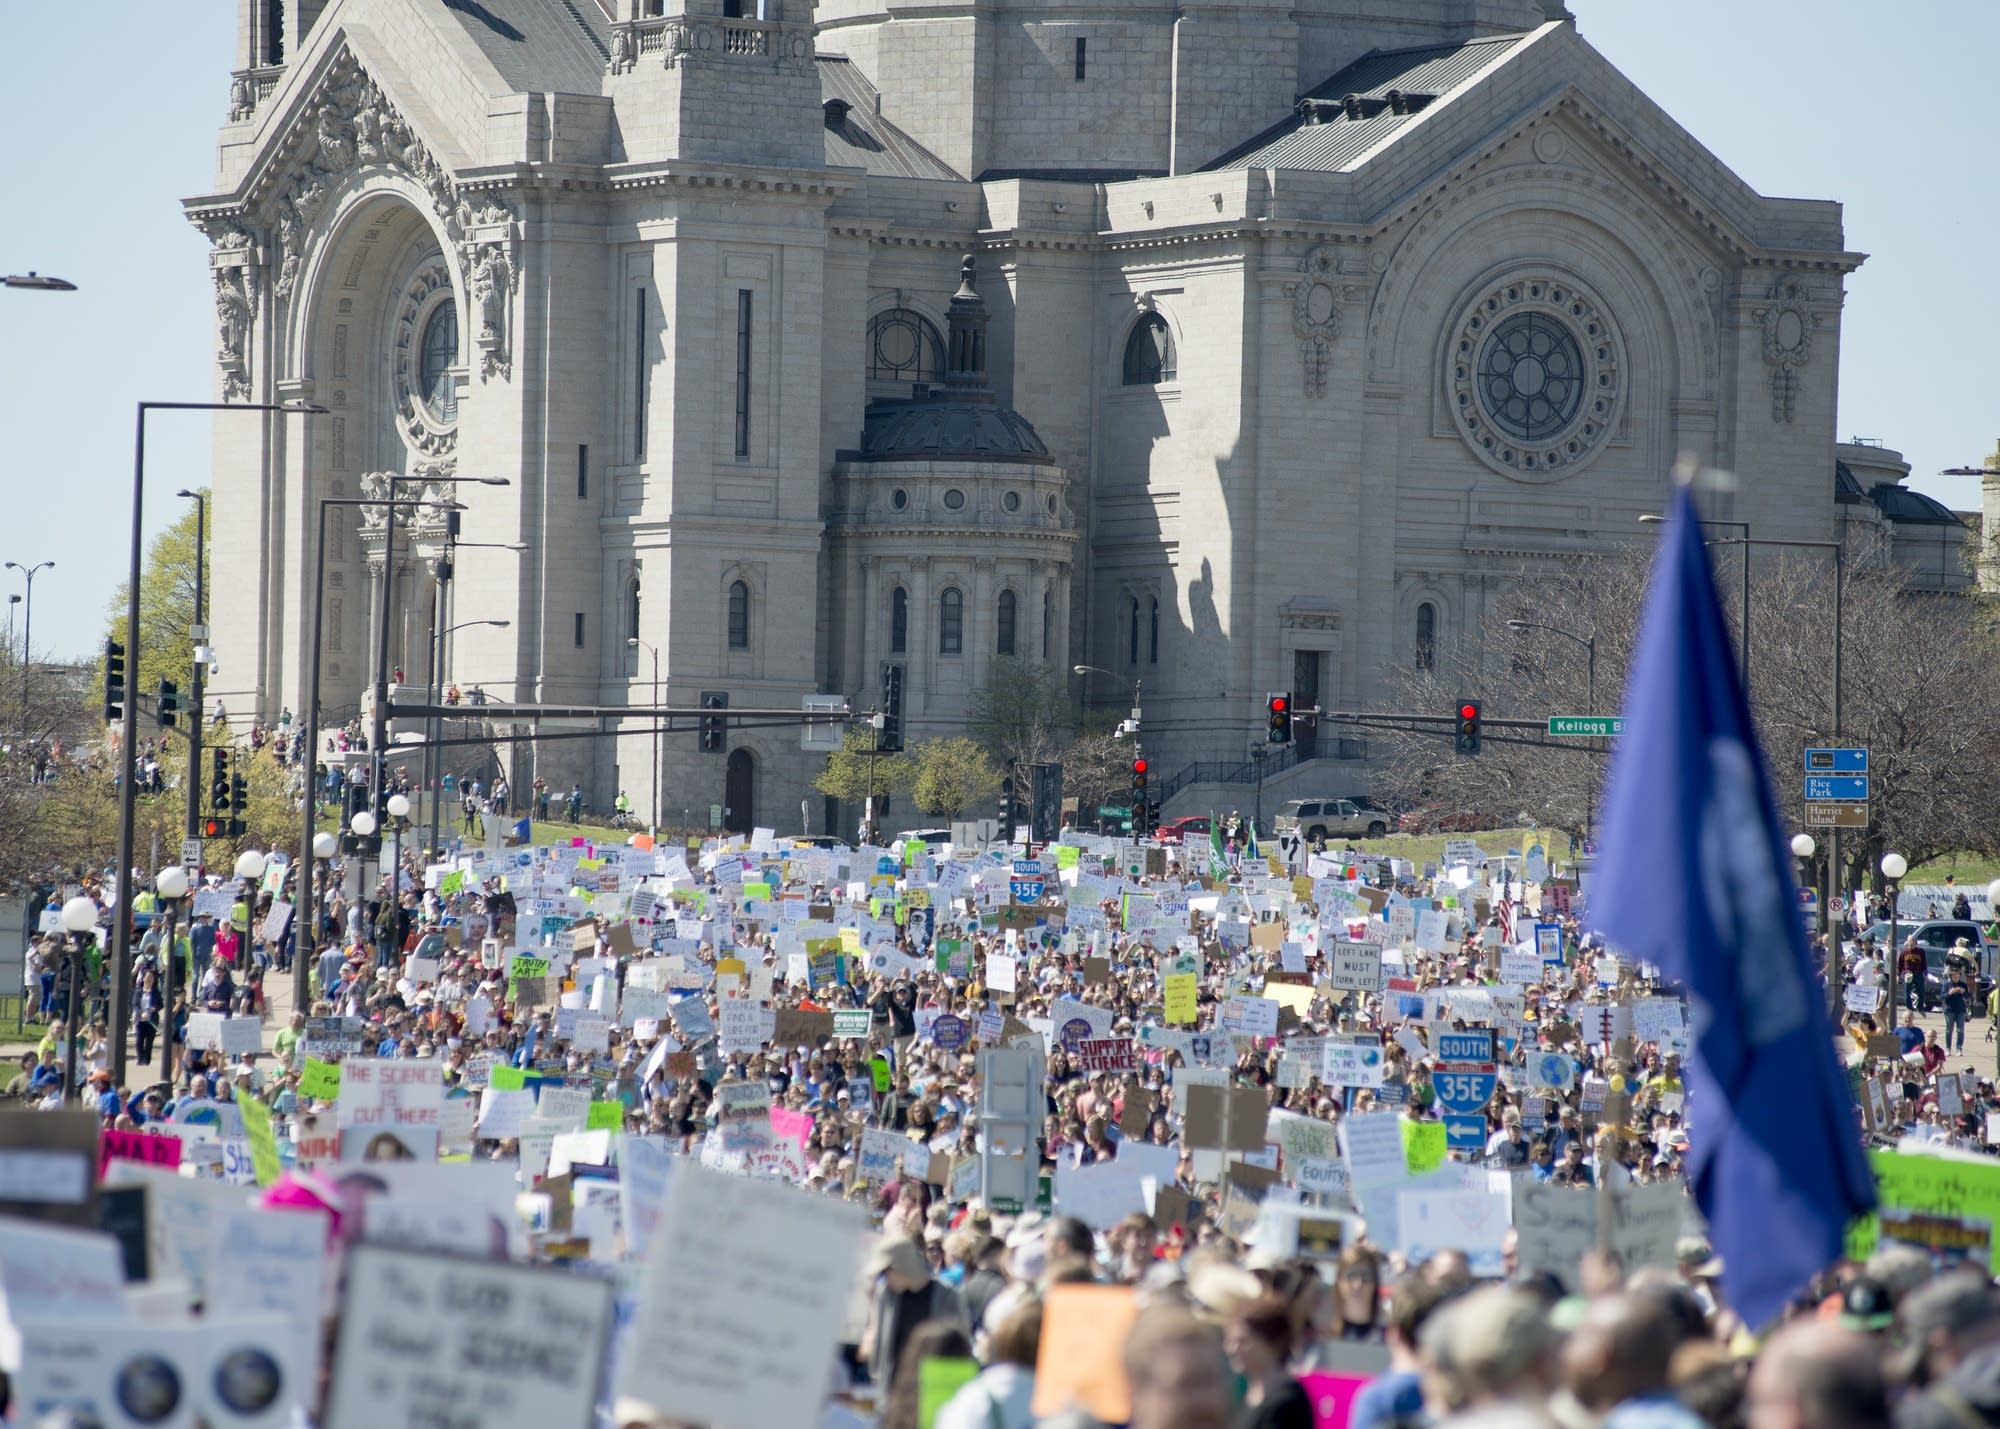 Marchers pass the Cathedral of St. Paul.